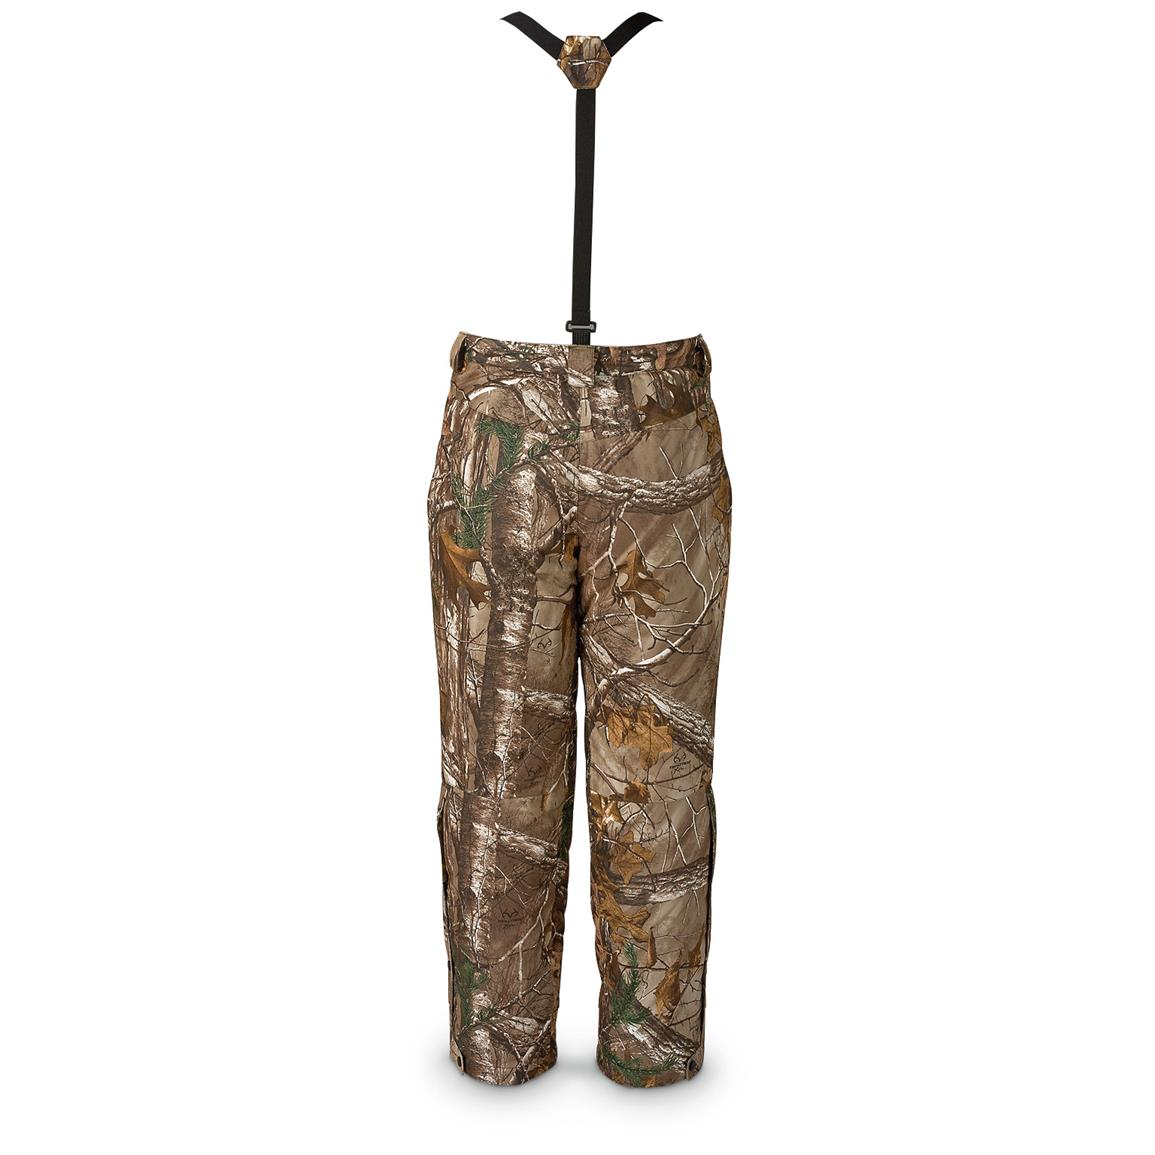 Brushed 100% polyester shell in Realtree Xtra